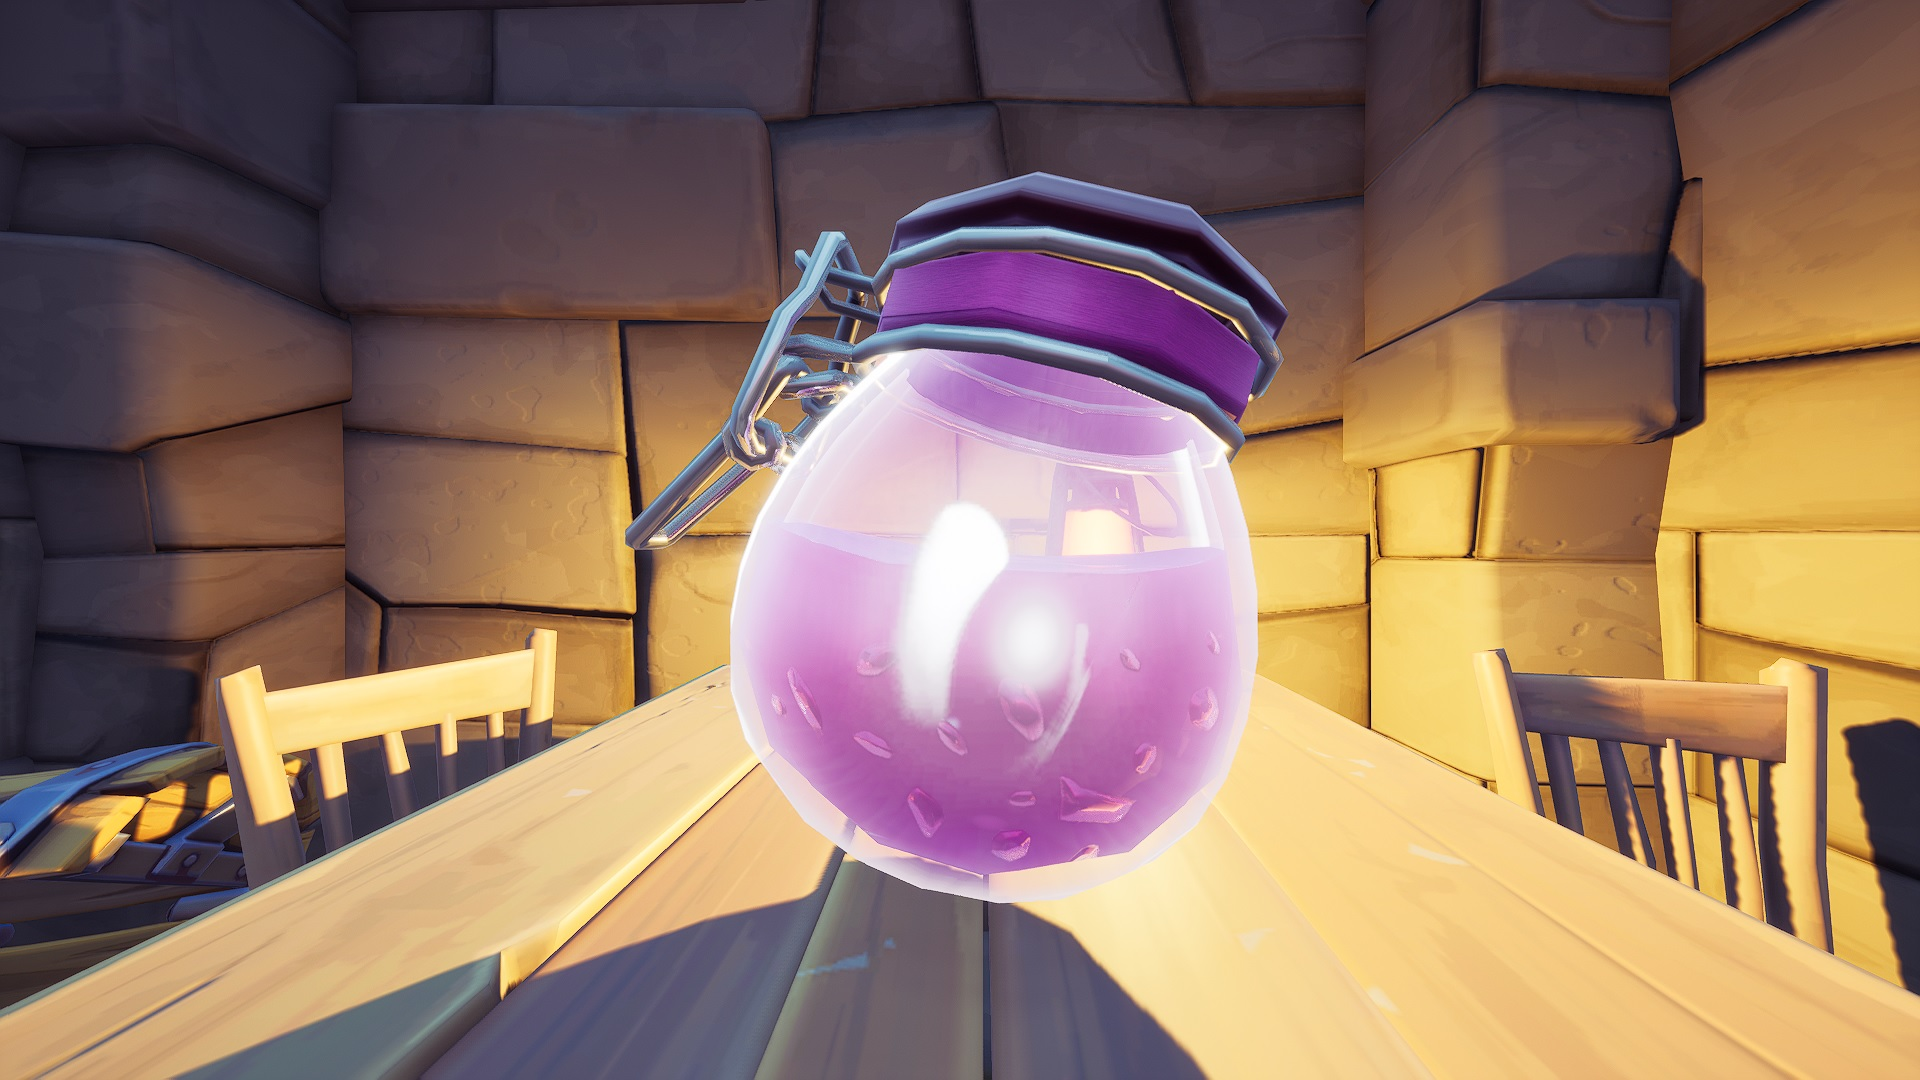 Where to find Grimble's love potion and how to deliver it in Fortnite